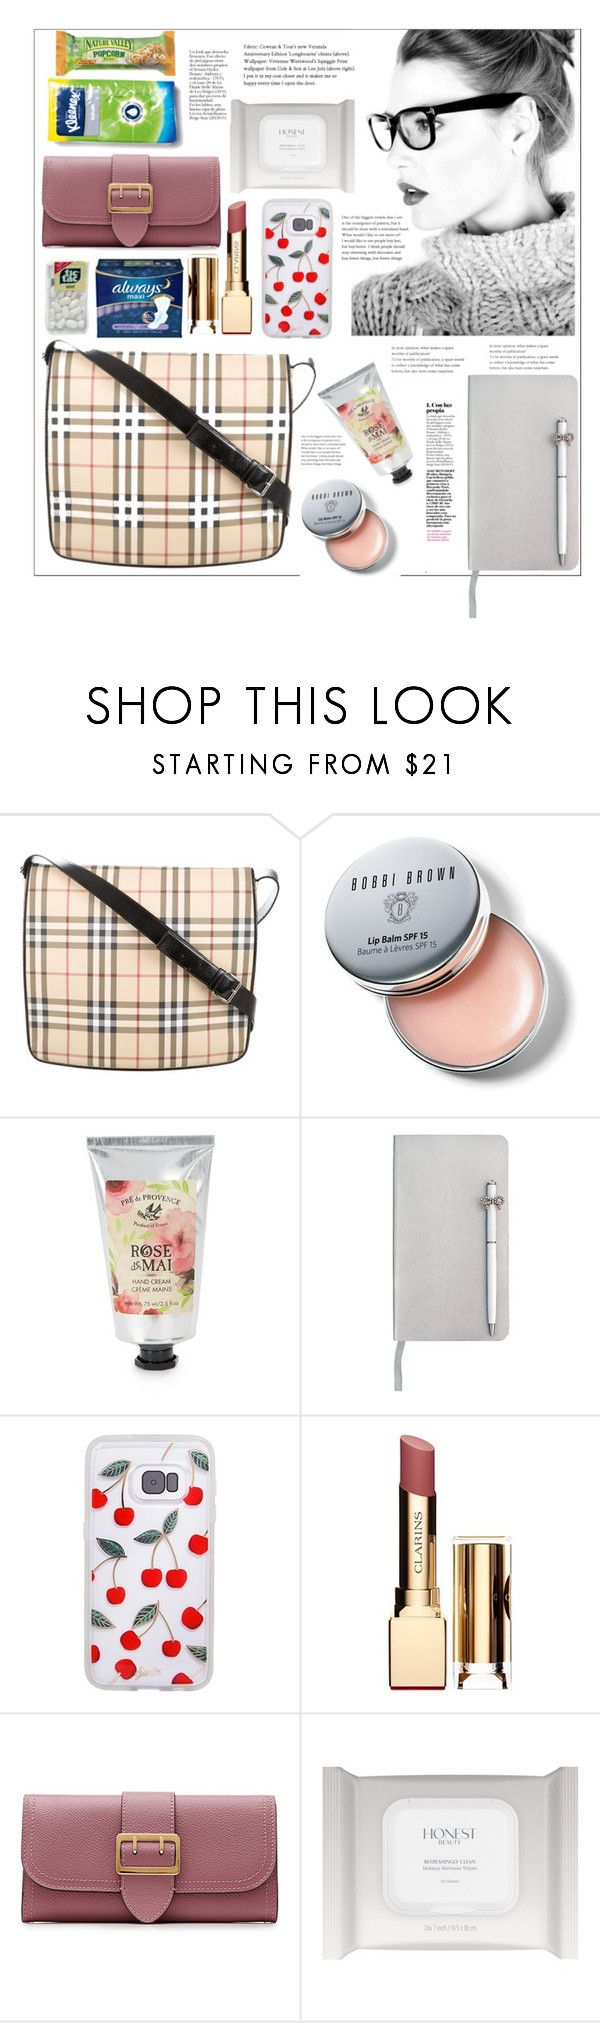 """""""Inside one bag"""" by natalyapril1976 ❤ liked on Polyvore featuring Burberry, Esse, Bobbi Brown Cosmetics, Pré de Provence, ICE London and Clarins"""